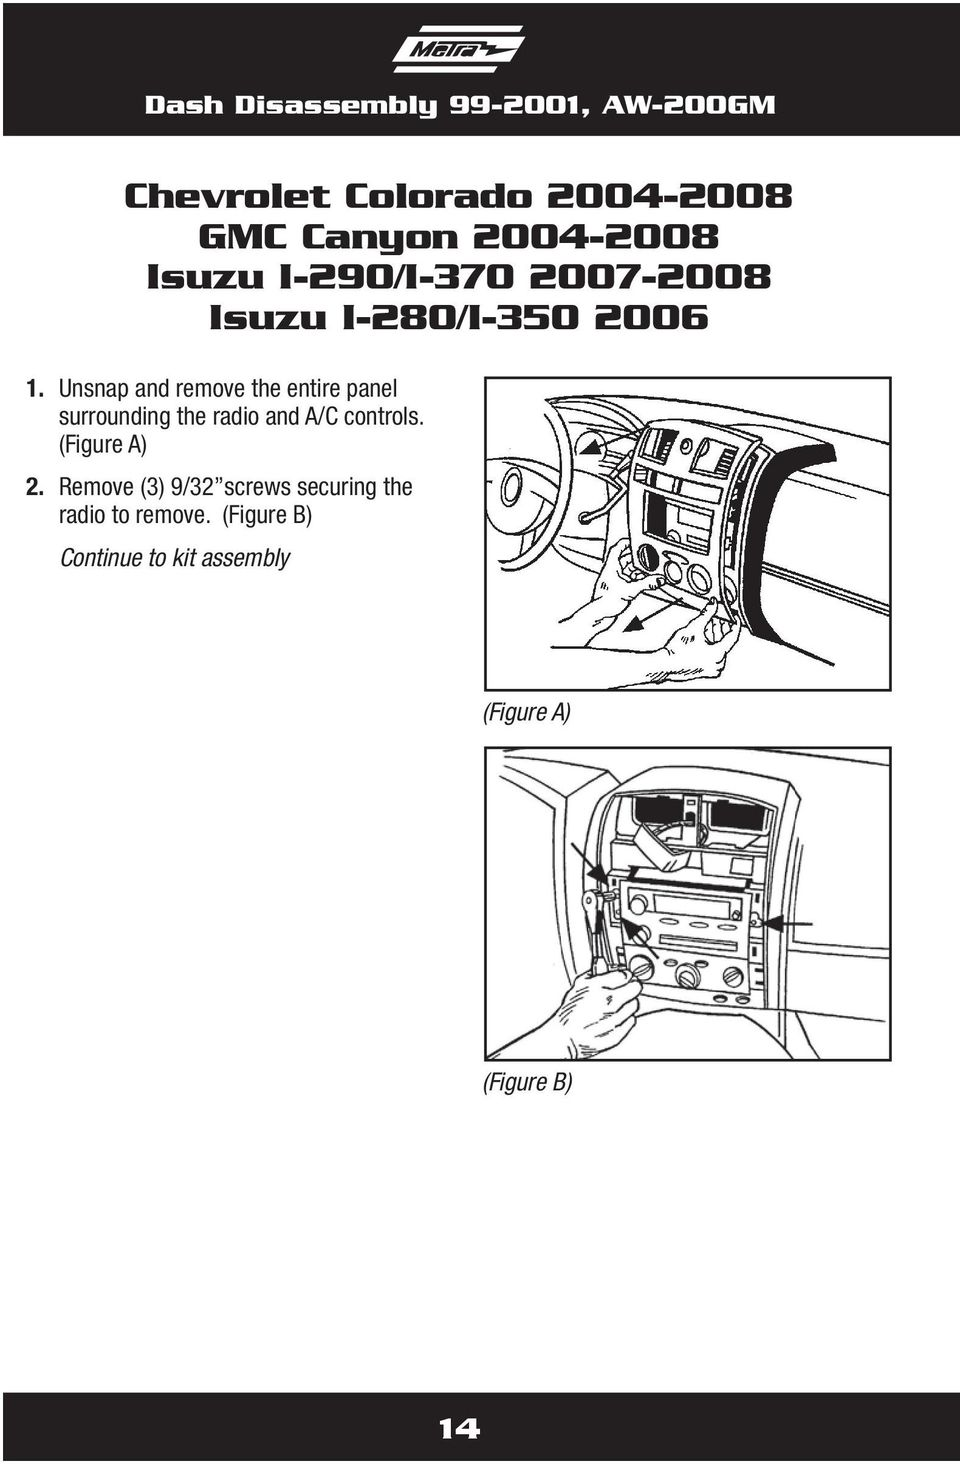 Unsnap and remove the entire panel surrounding the radio and A/C